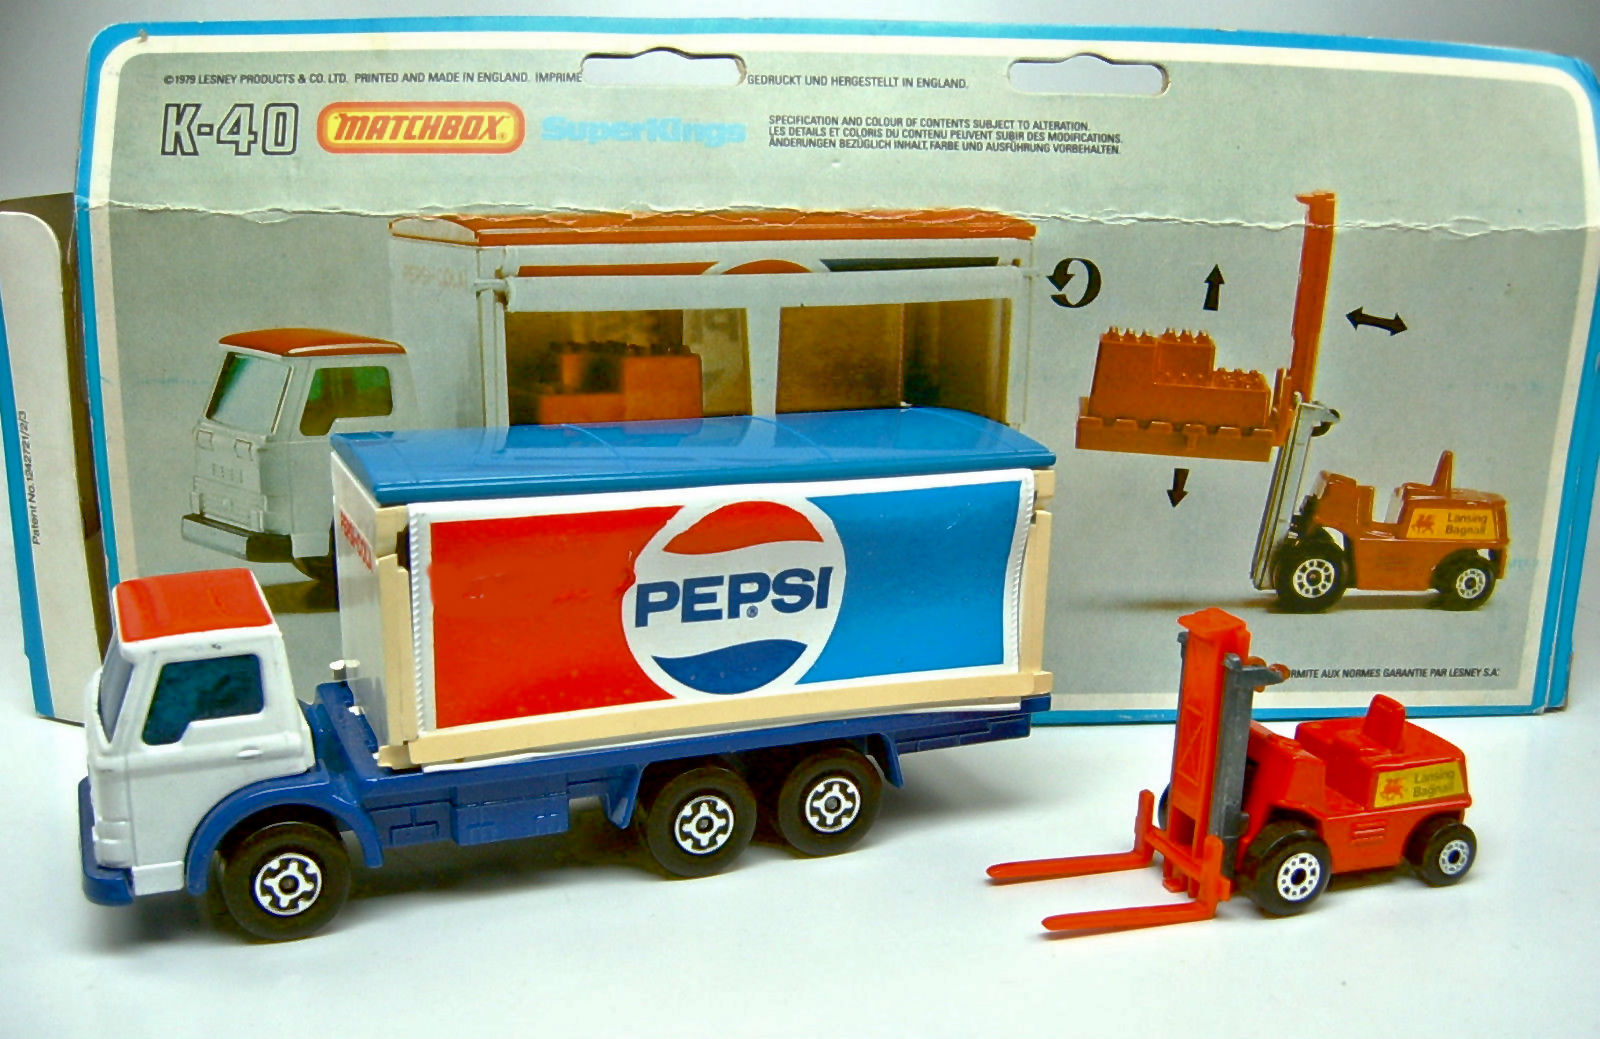 Delivery Truck and Fork Lift (K-40)